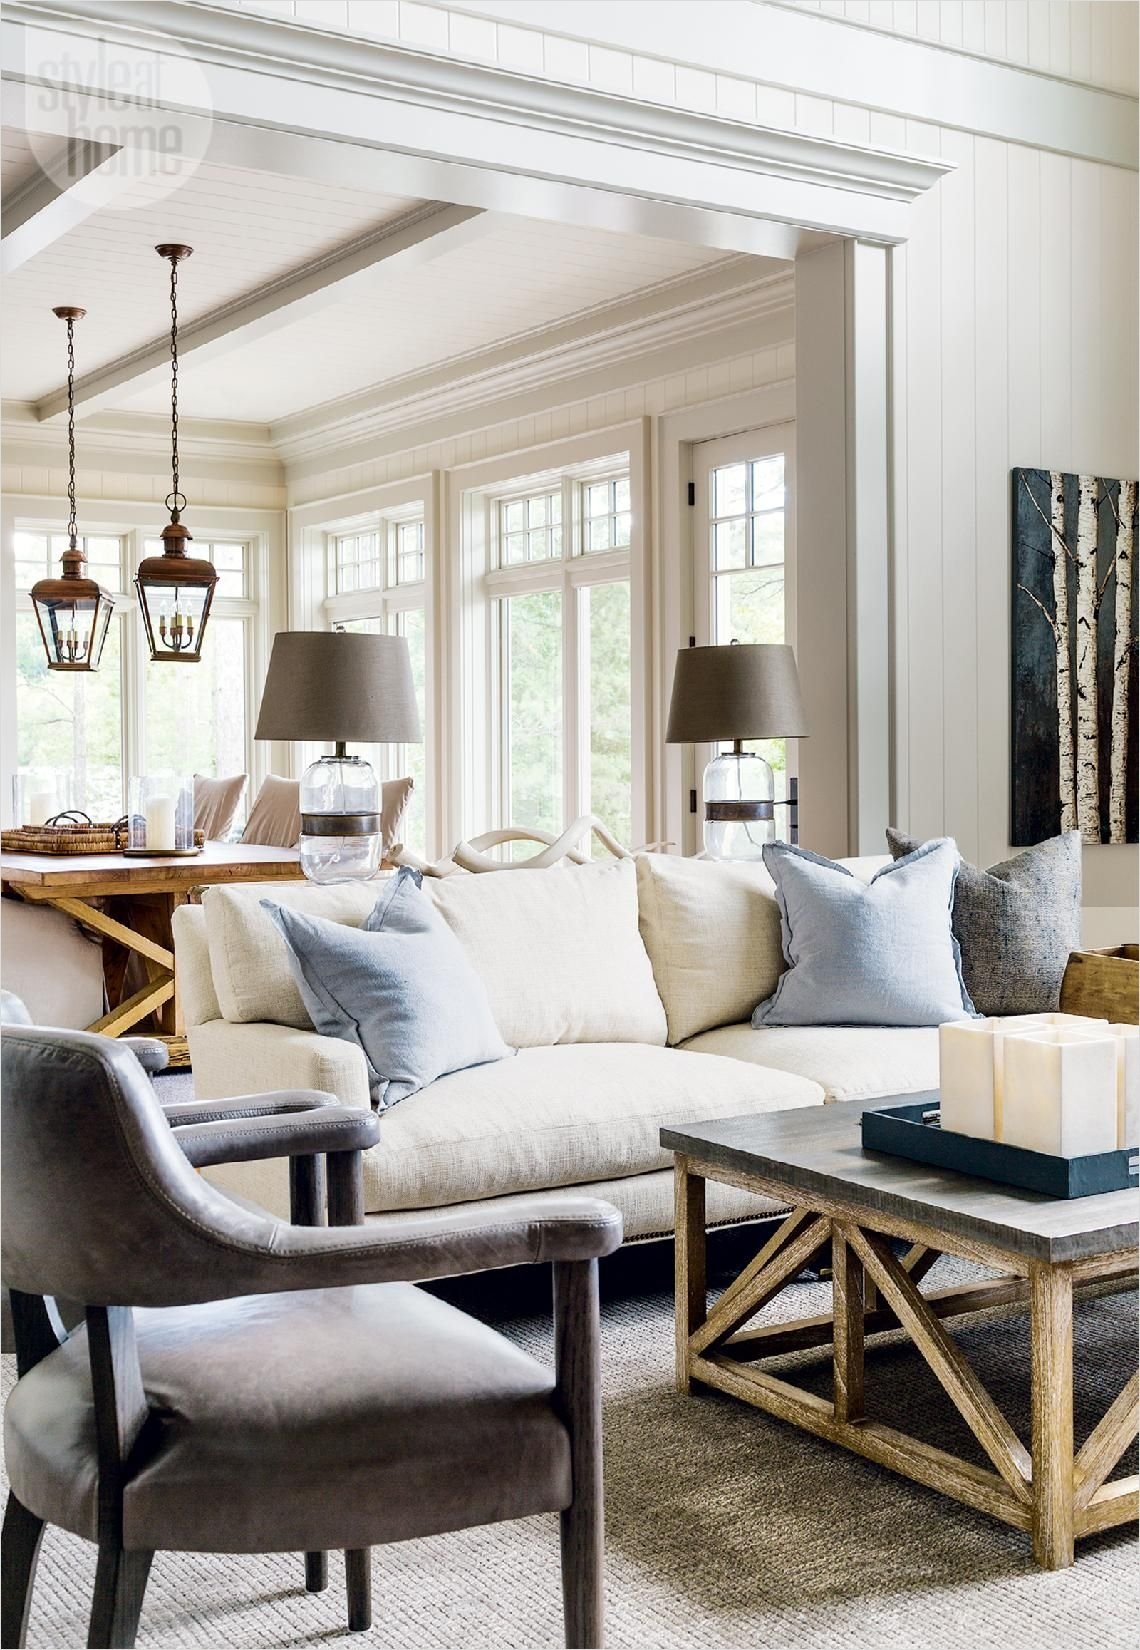 Dozens of inspiring ideas to decorate your living room, from countryliving.com. 35 stunning casual living room decorating ideas for 2020 5 ...